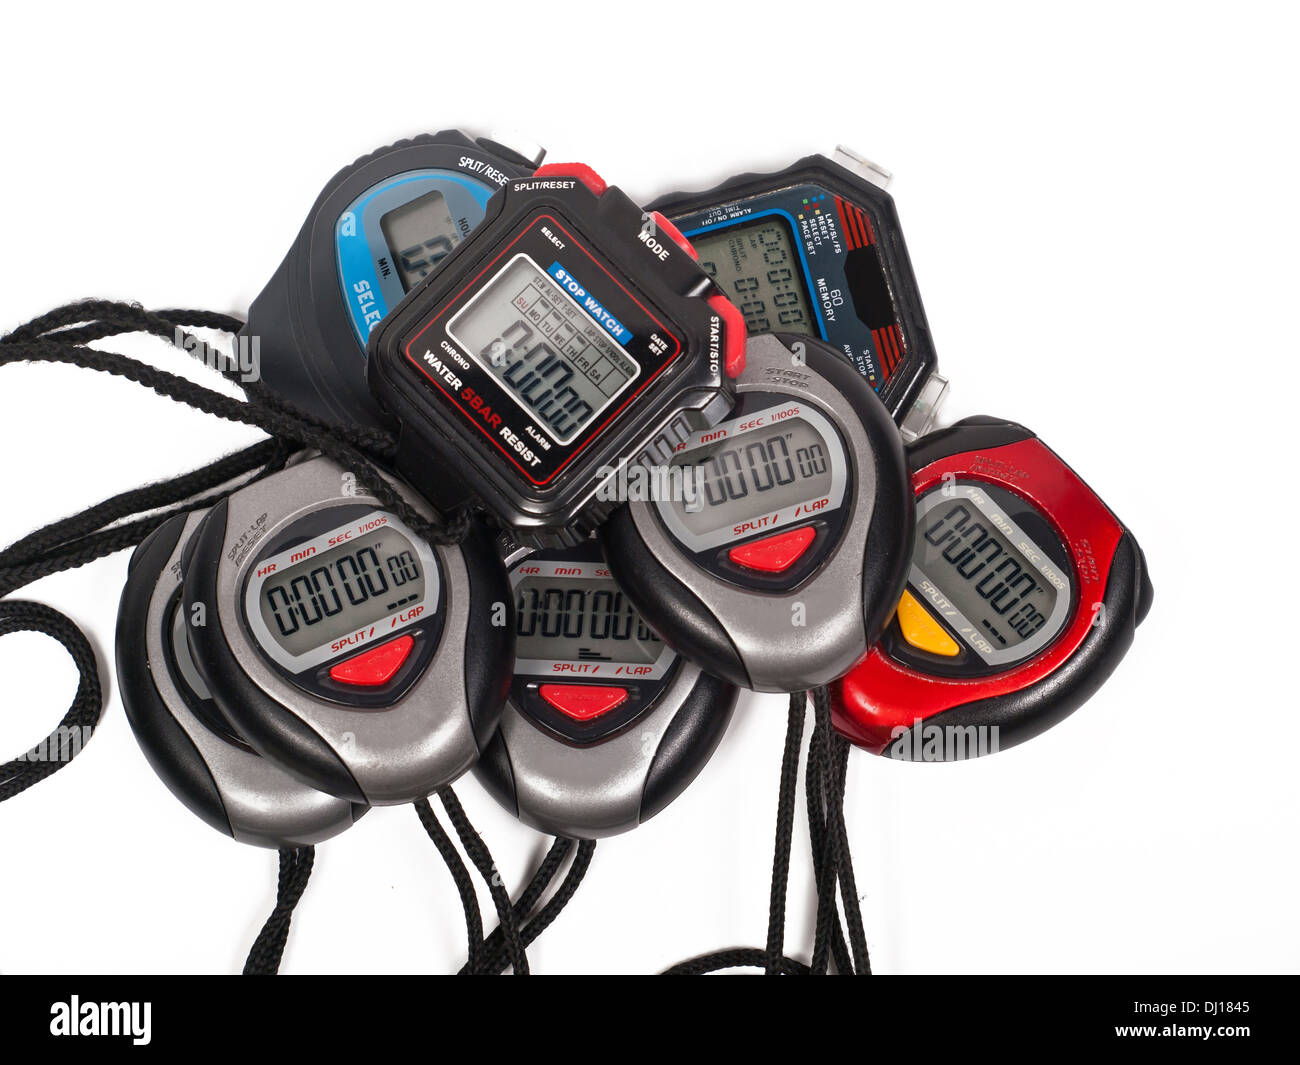 eight digital stop watches altogether - Stock Image